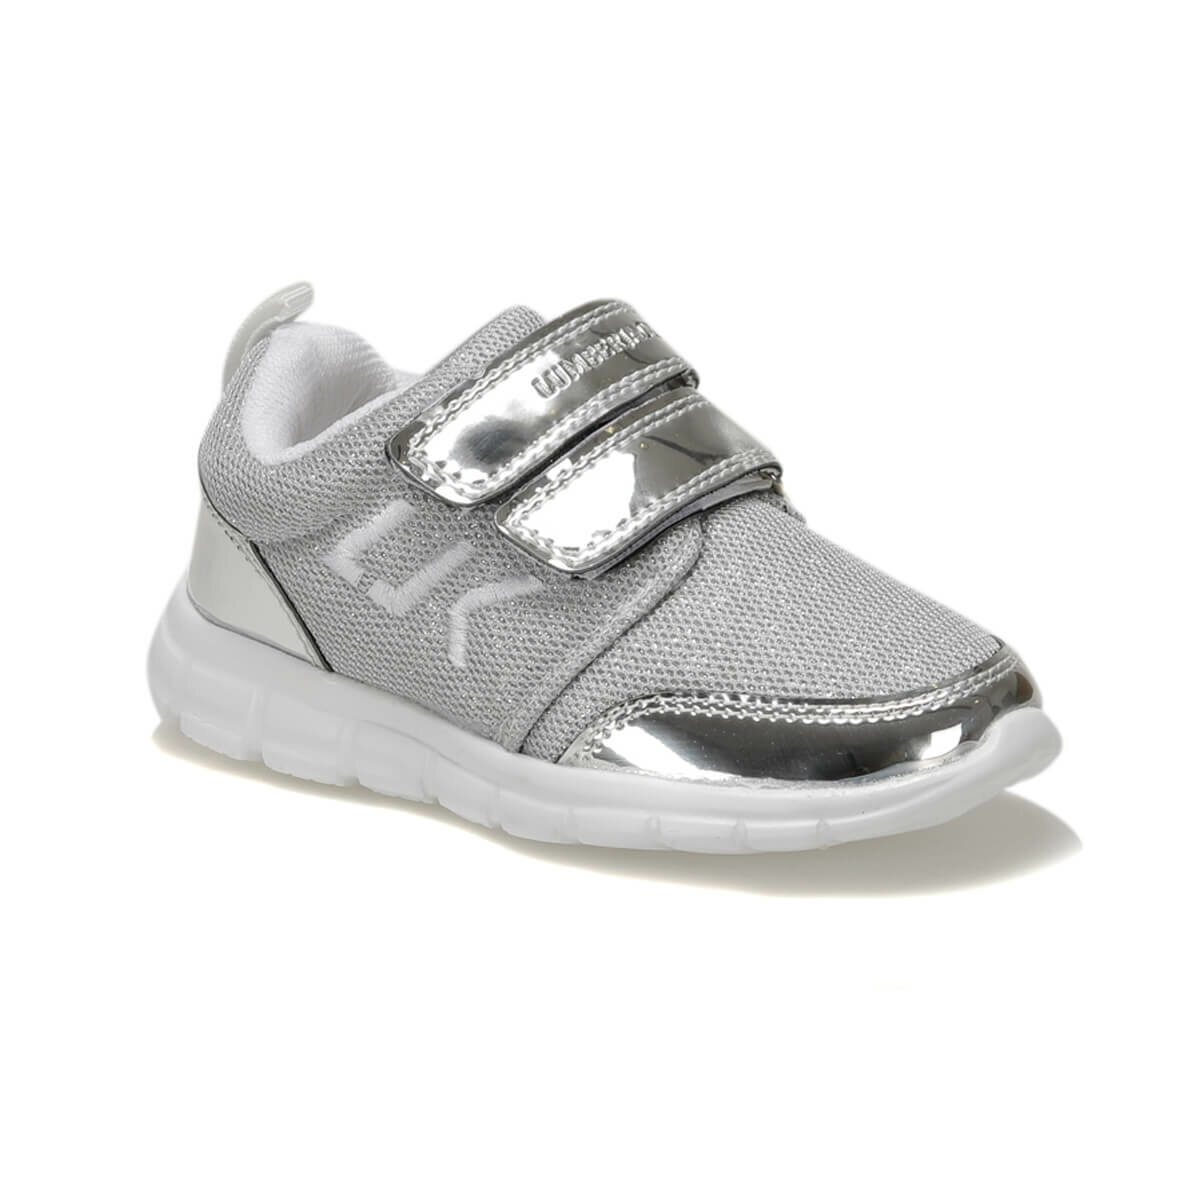 FLO SMASH Silver Female Child Sneaker Shoes LUMBERJACK